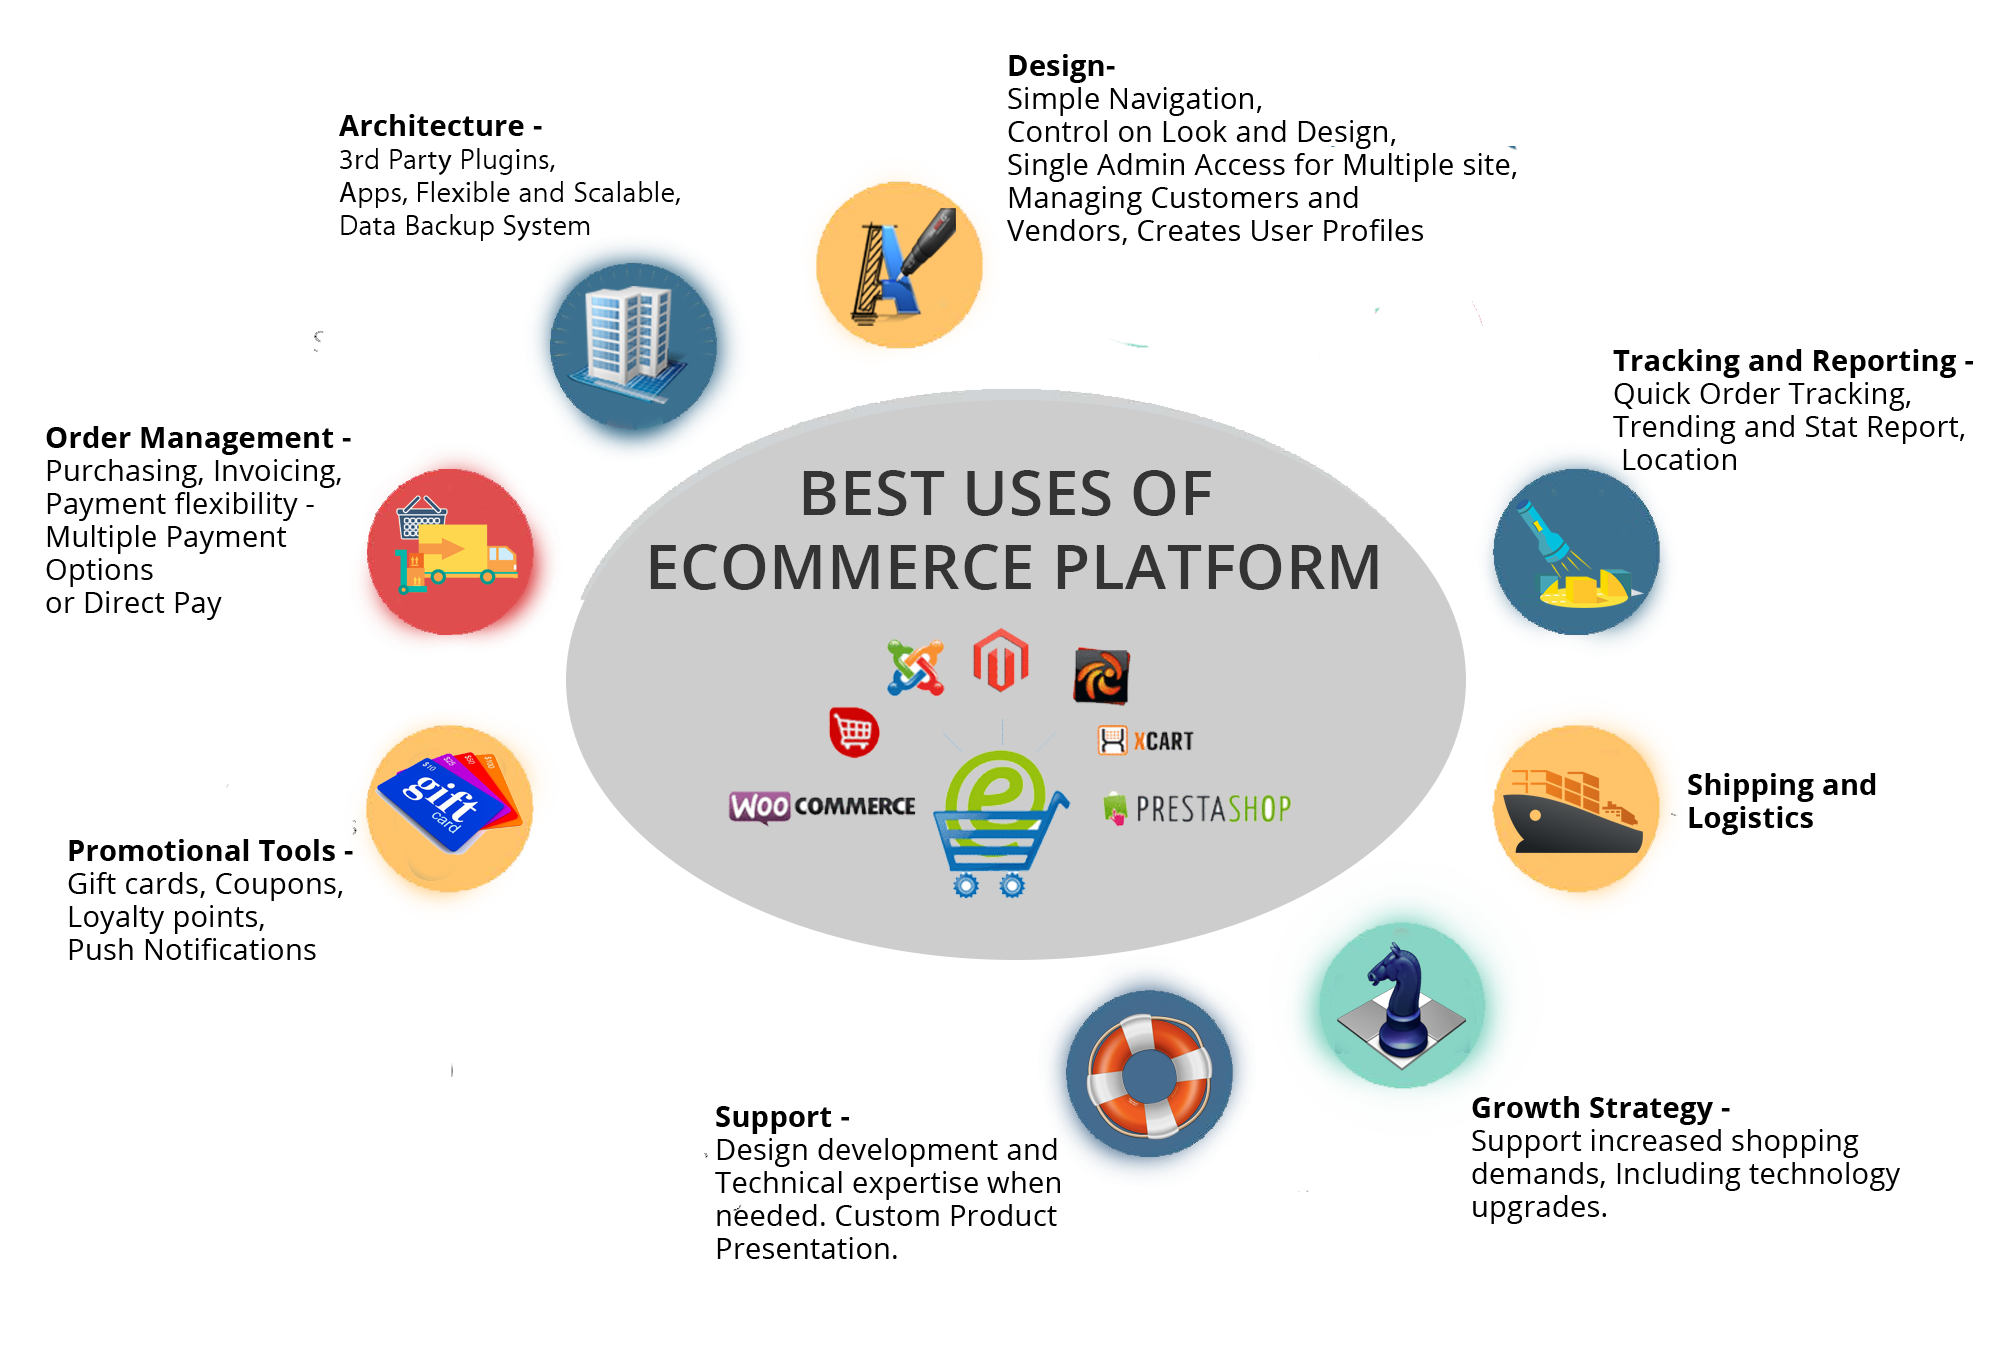 best uses of ecommerce platform